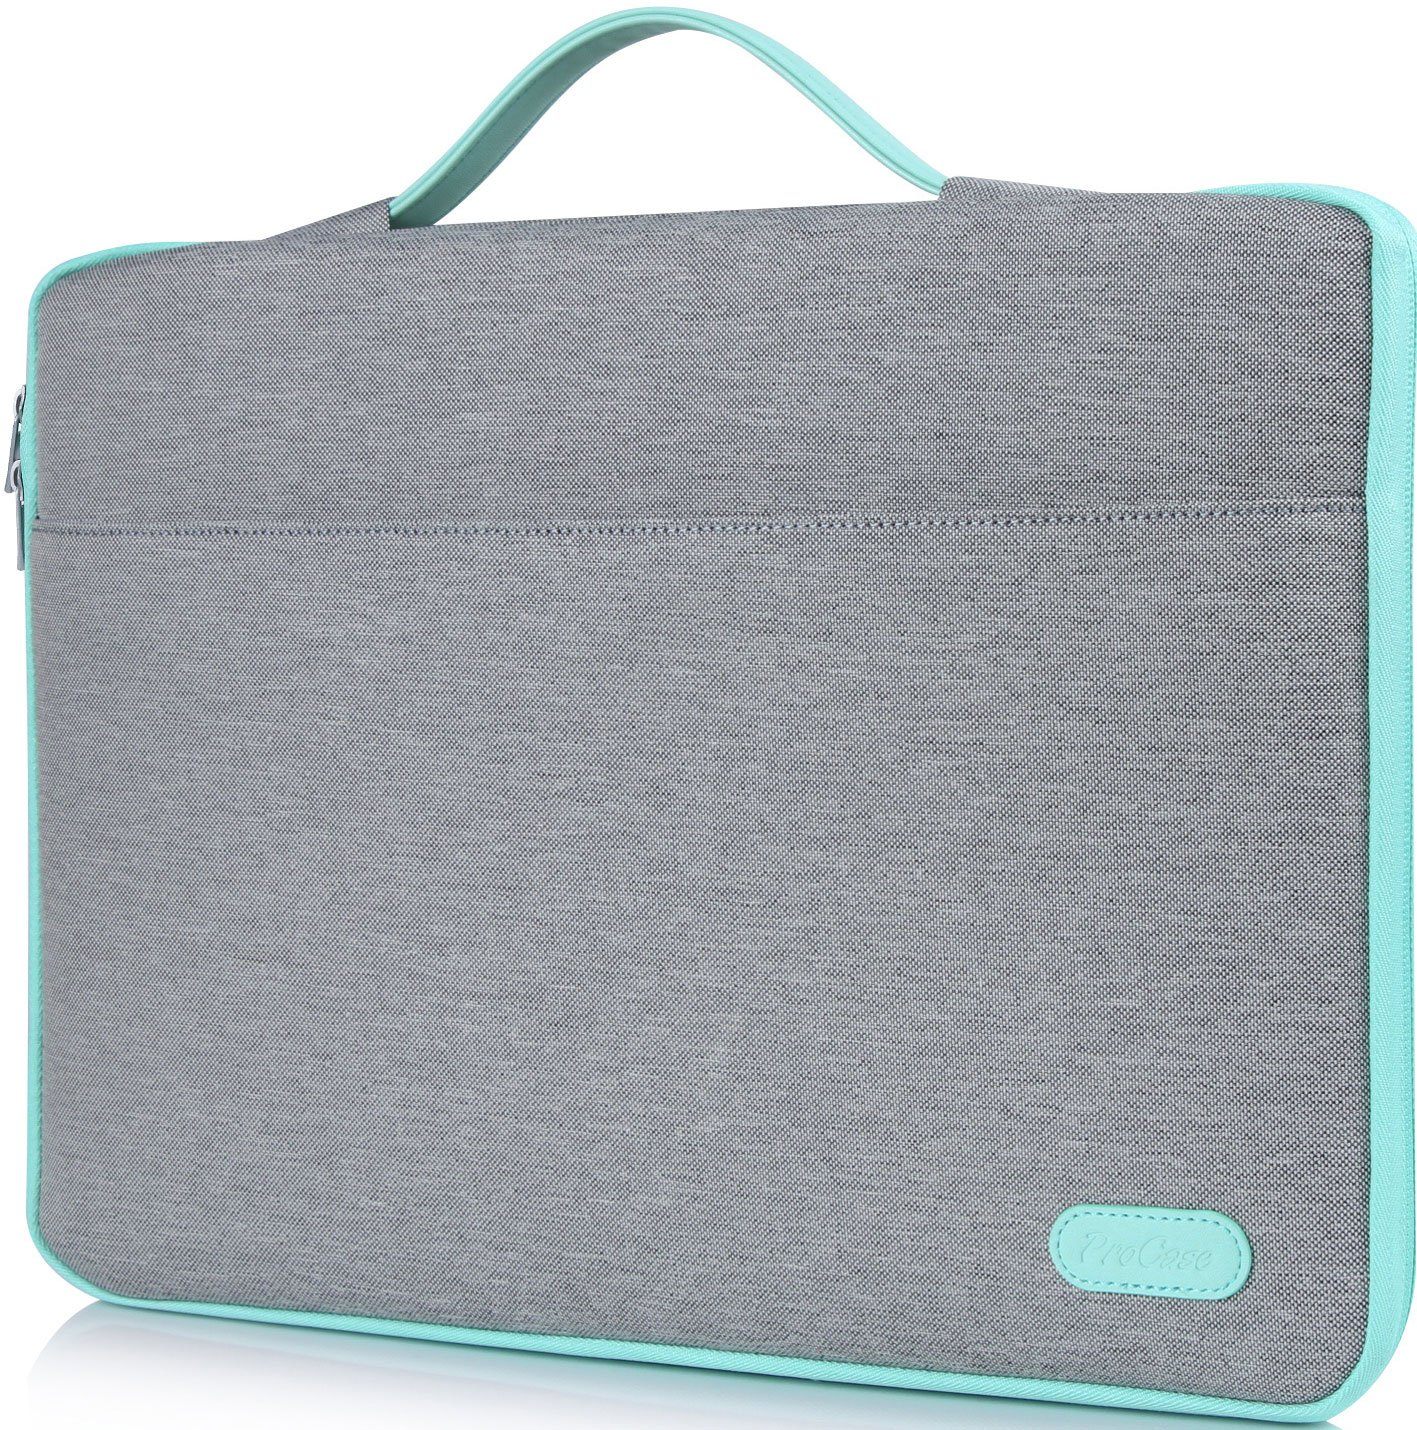 ProCase 14-15.6 Inch Laptop Sleeve Case Protective Bag, Ultrabook Notebook Carrying Case Handbag for 14'' 15'' Samsung Sony Asus Acer Lenovo Dell HP Toshiba Chromebook Computers -Light Grey by ProCase